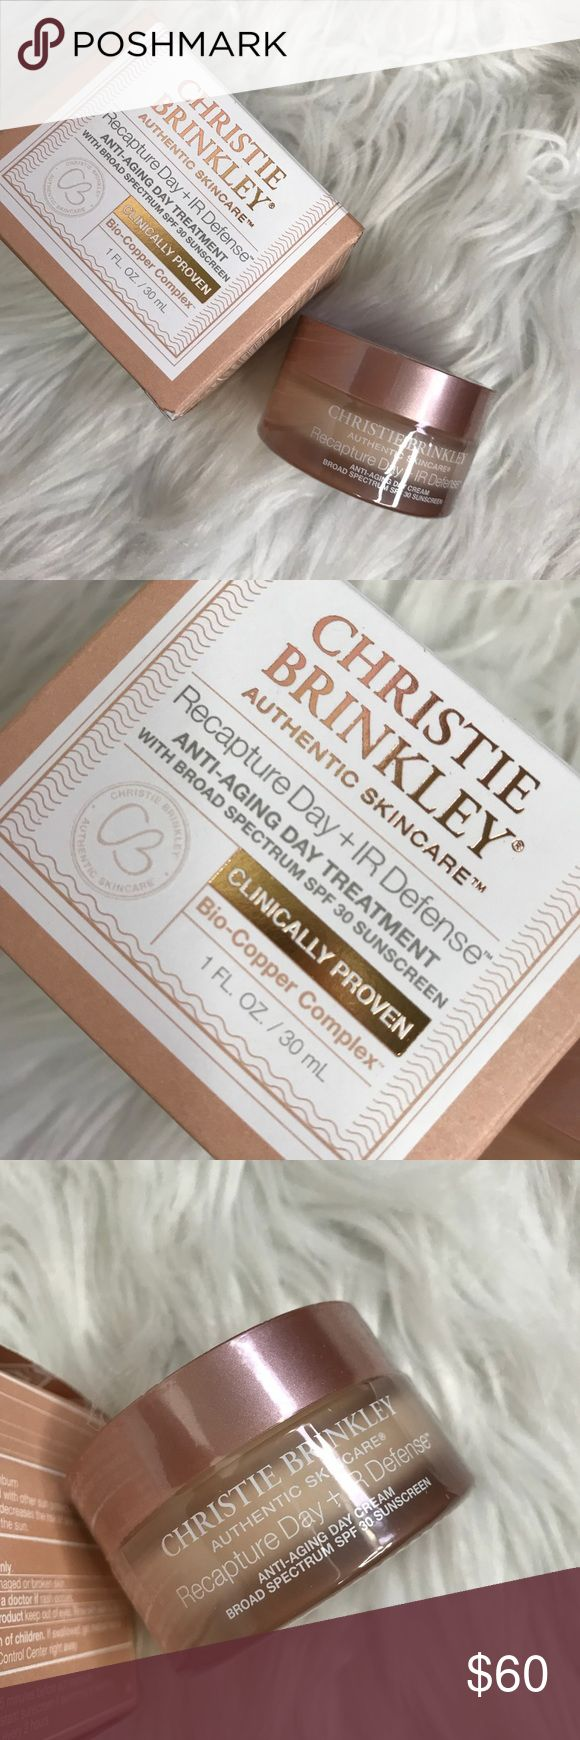 Christie Brinkley skin care Authentic skin care from Christie Brinkley… This is an anti-aging cream with a broad-spectrum SPF… This is great for all skin tones and skin types never used still sealed christie brinkley Makeup Face Primer